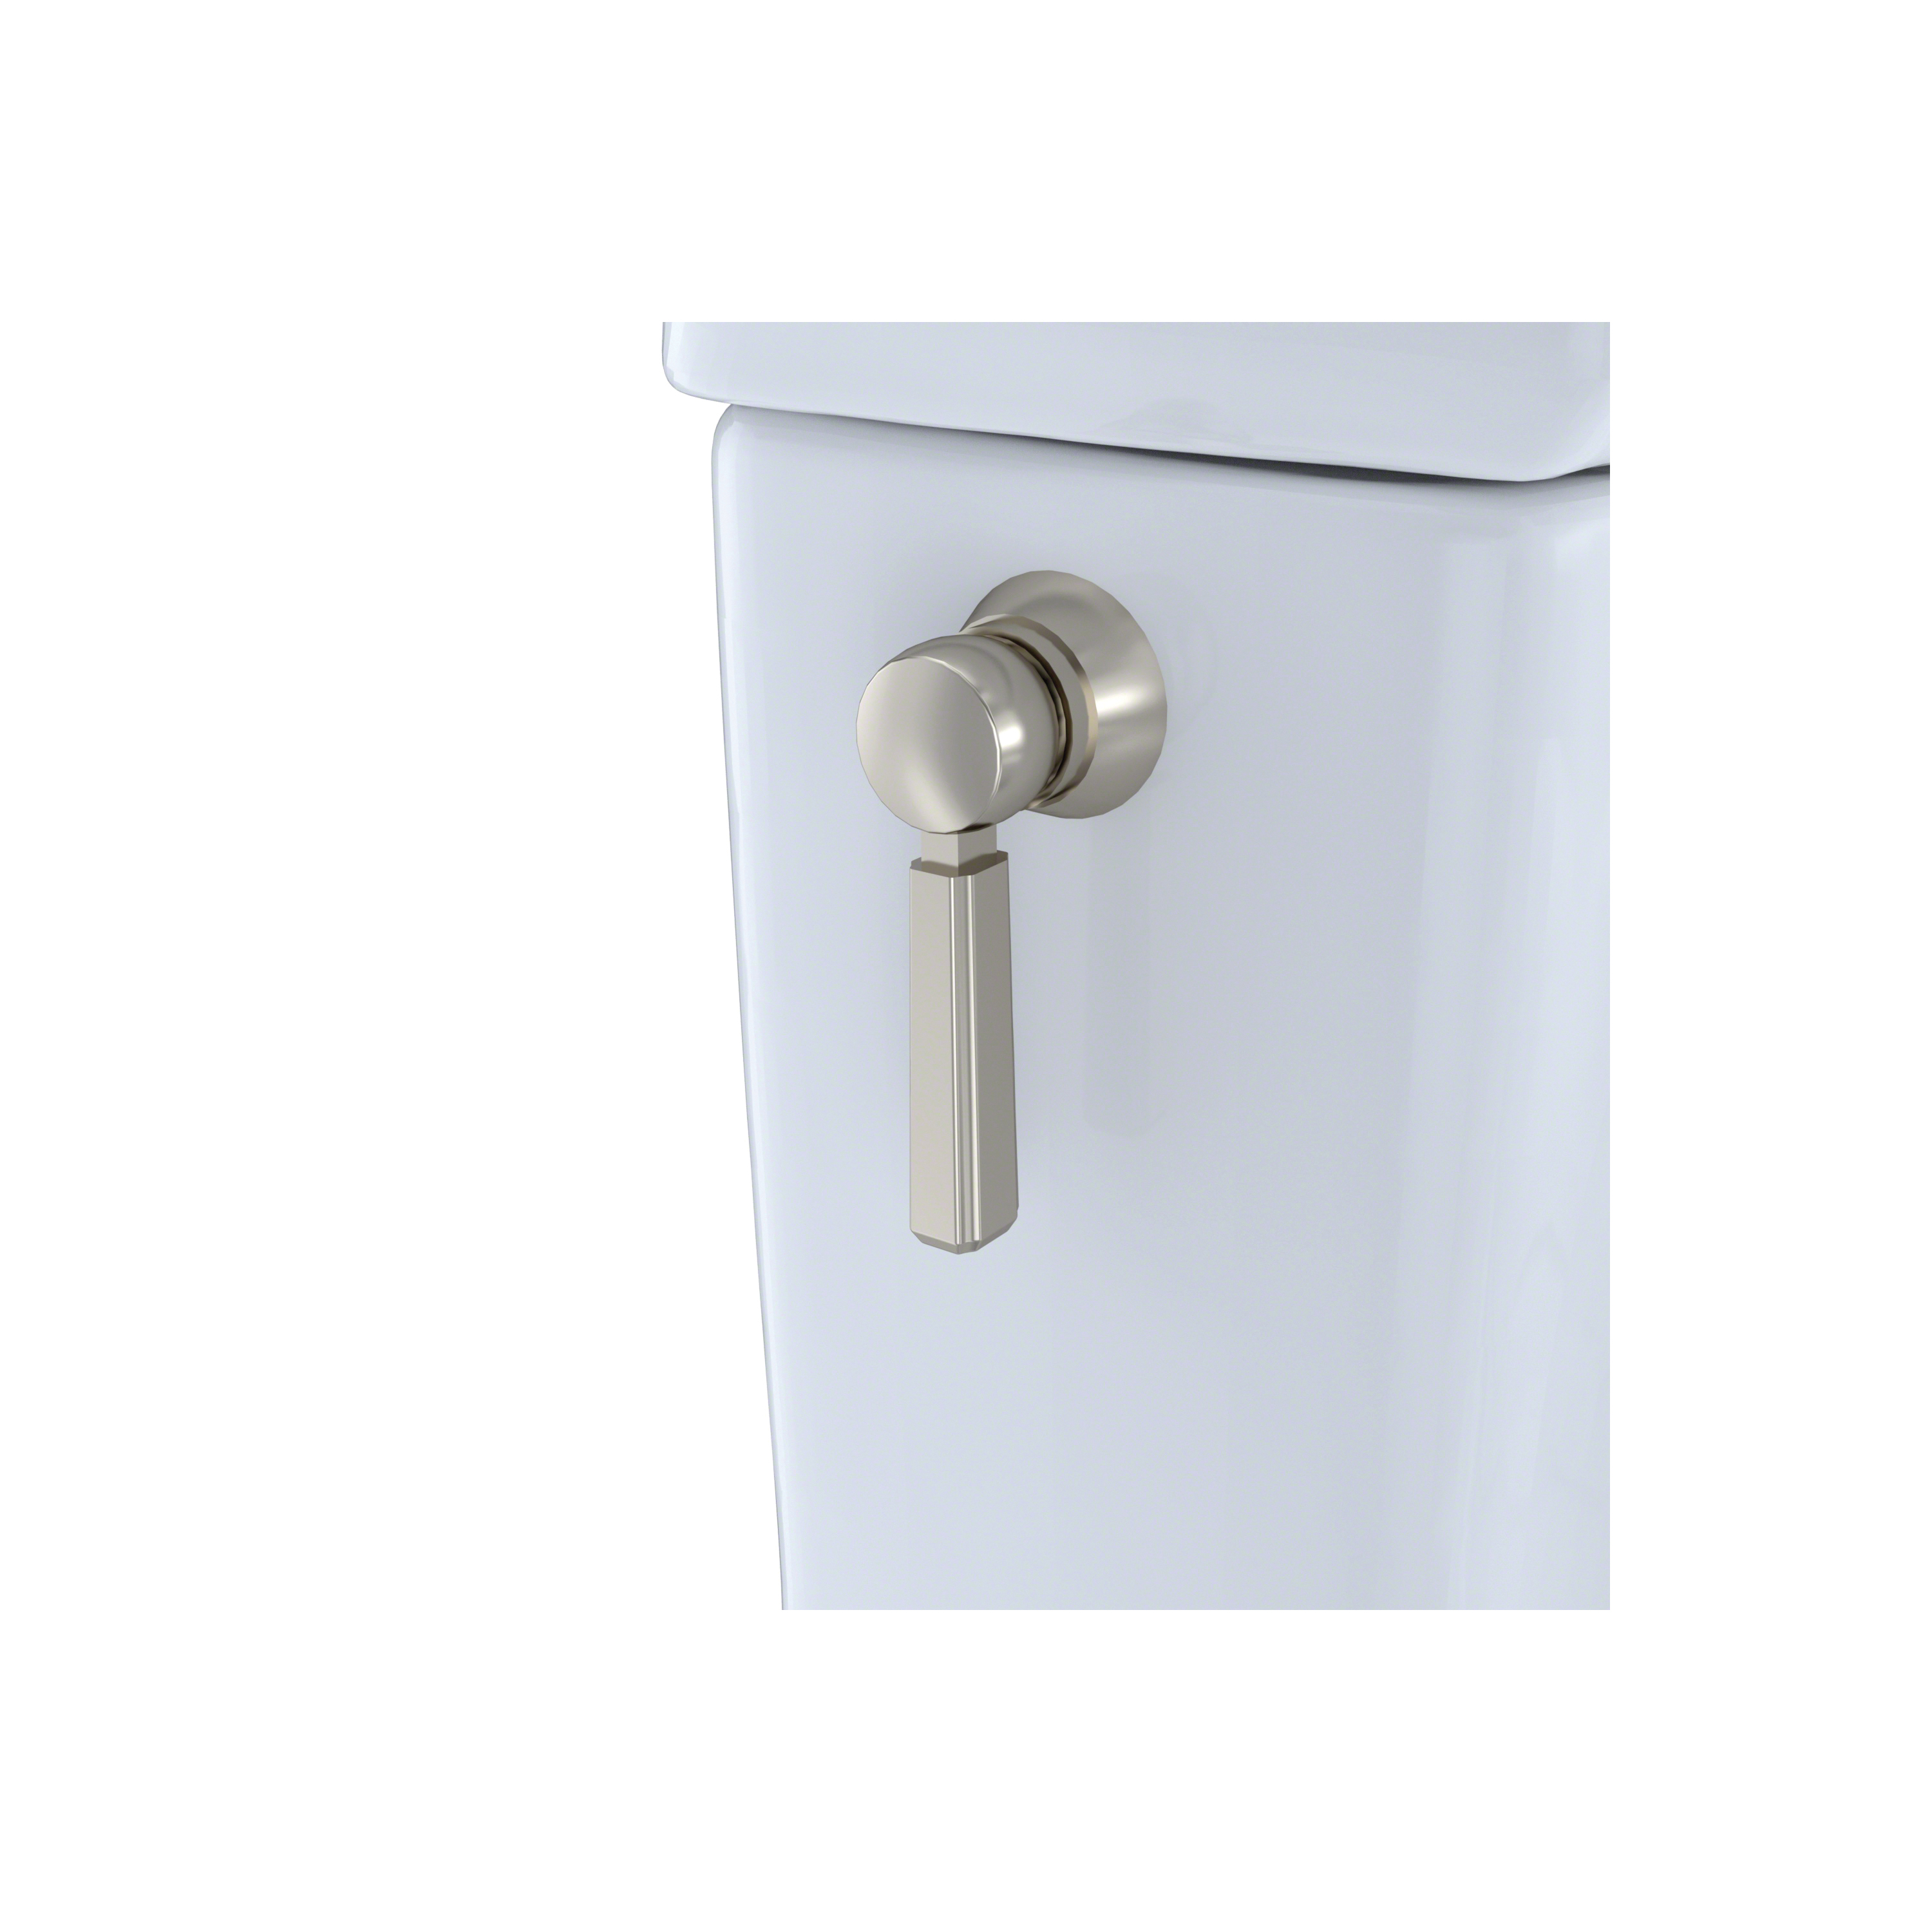 Toto® THU231R Trip Lever Handle, Brushed Nickel, Domestic